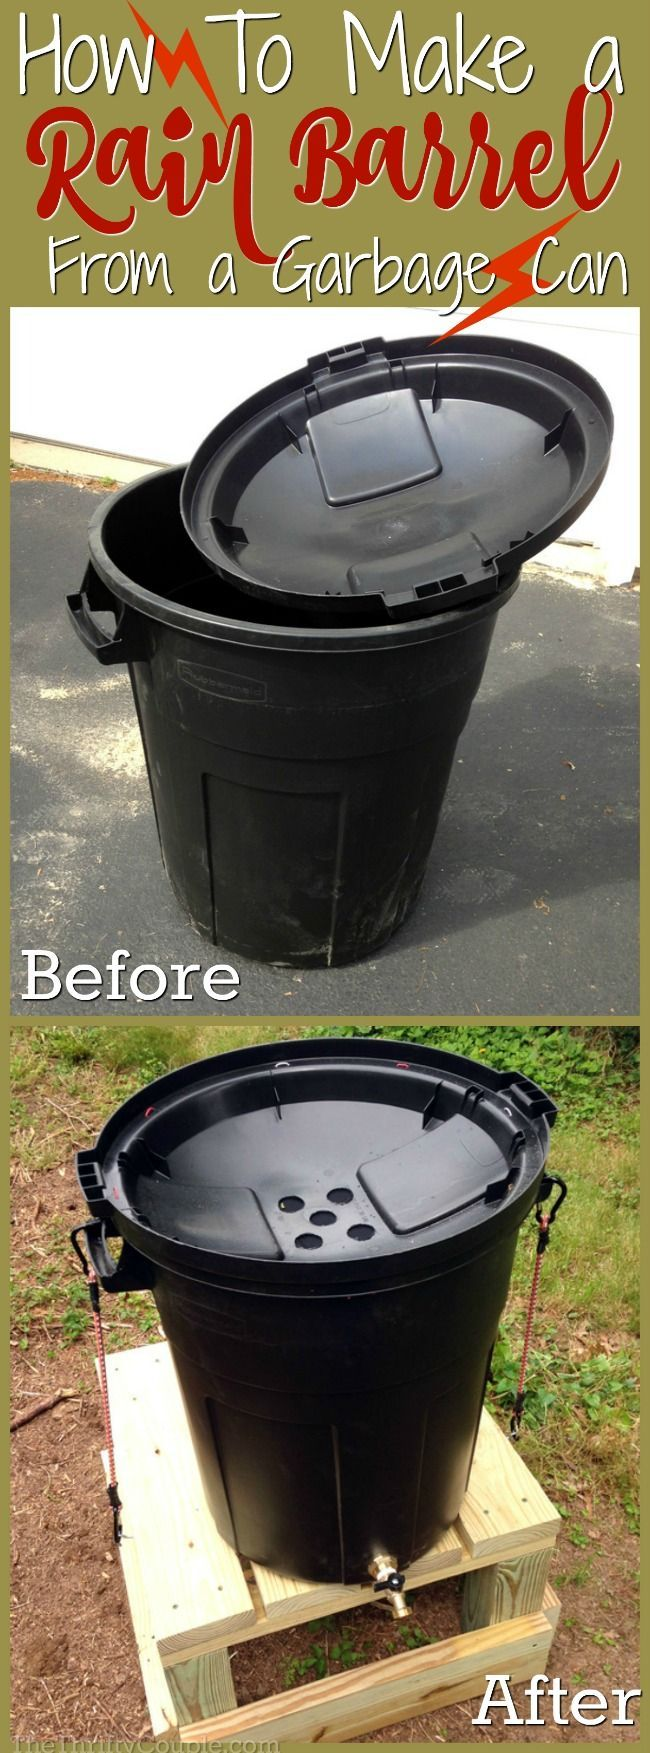 Today's featured DIY project is a great one because we are entering a lovely rainy season soon! Collecting rain water is a convenient, thrifty and green way to water your yard. But not only that, is is a cleaner, more natural way to care for your gardens, yard and landscape. There's an article...